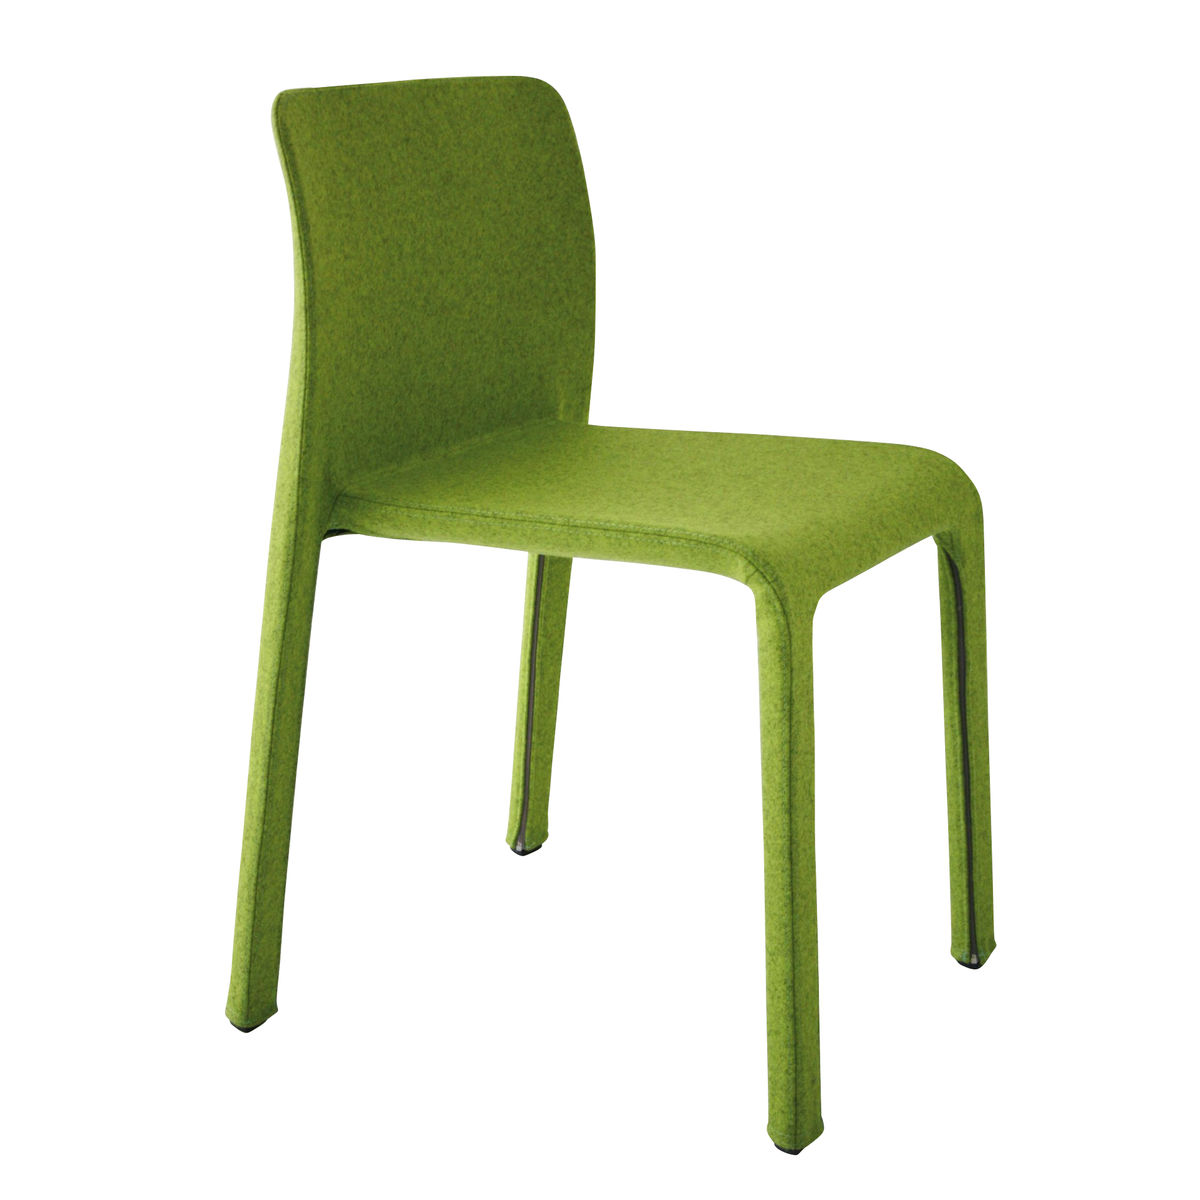 Dressed first chair magis for Magis chair